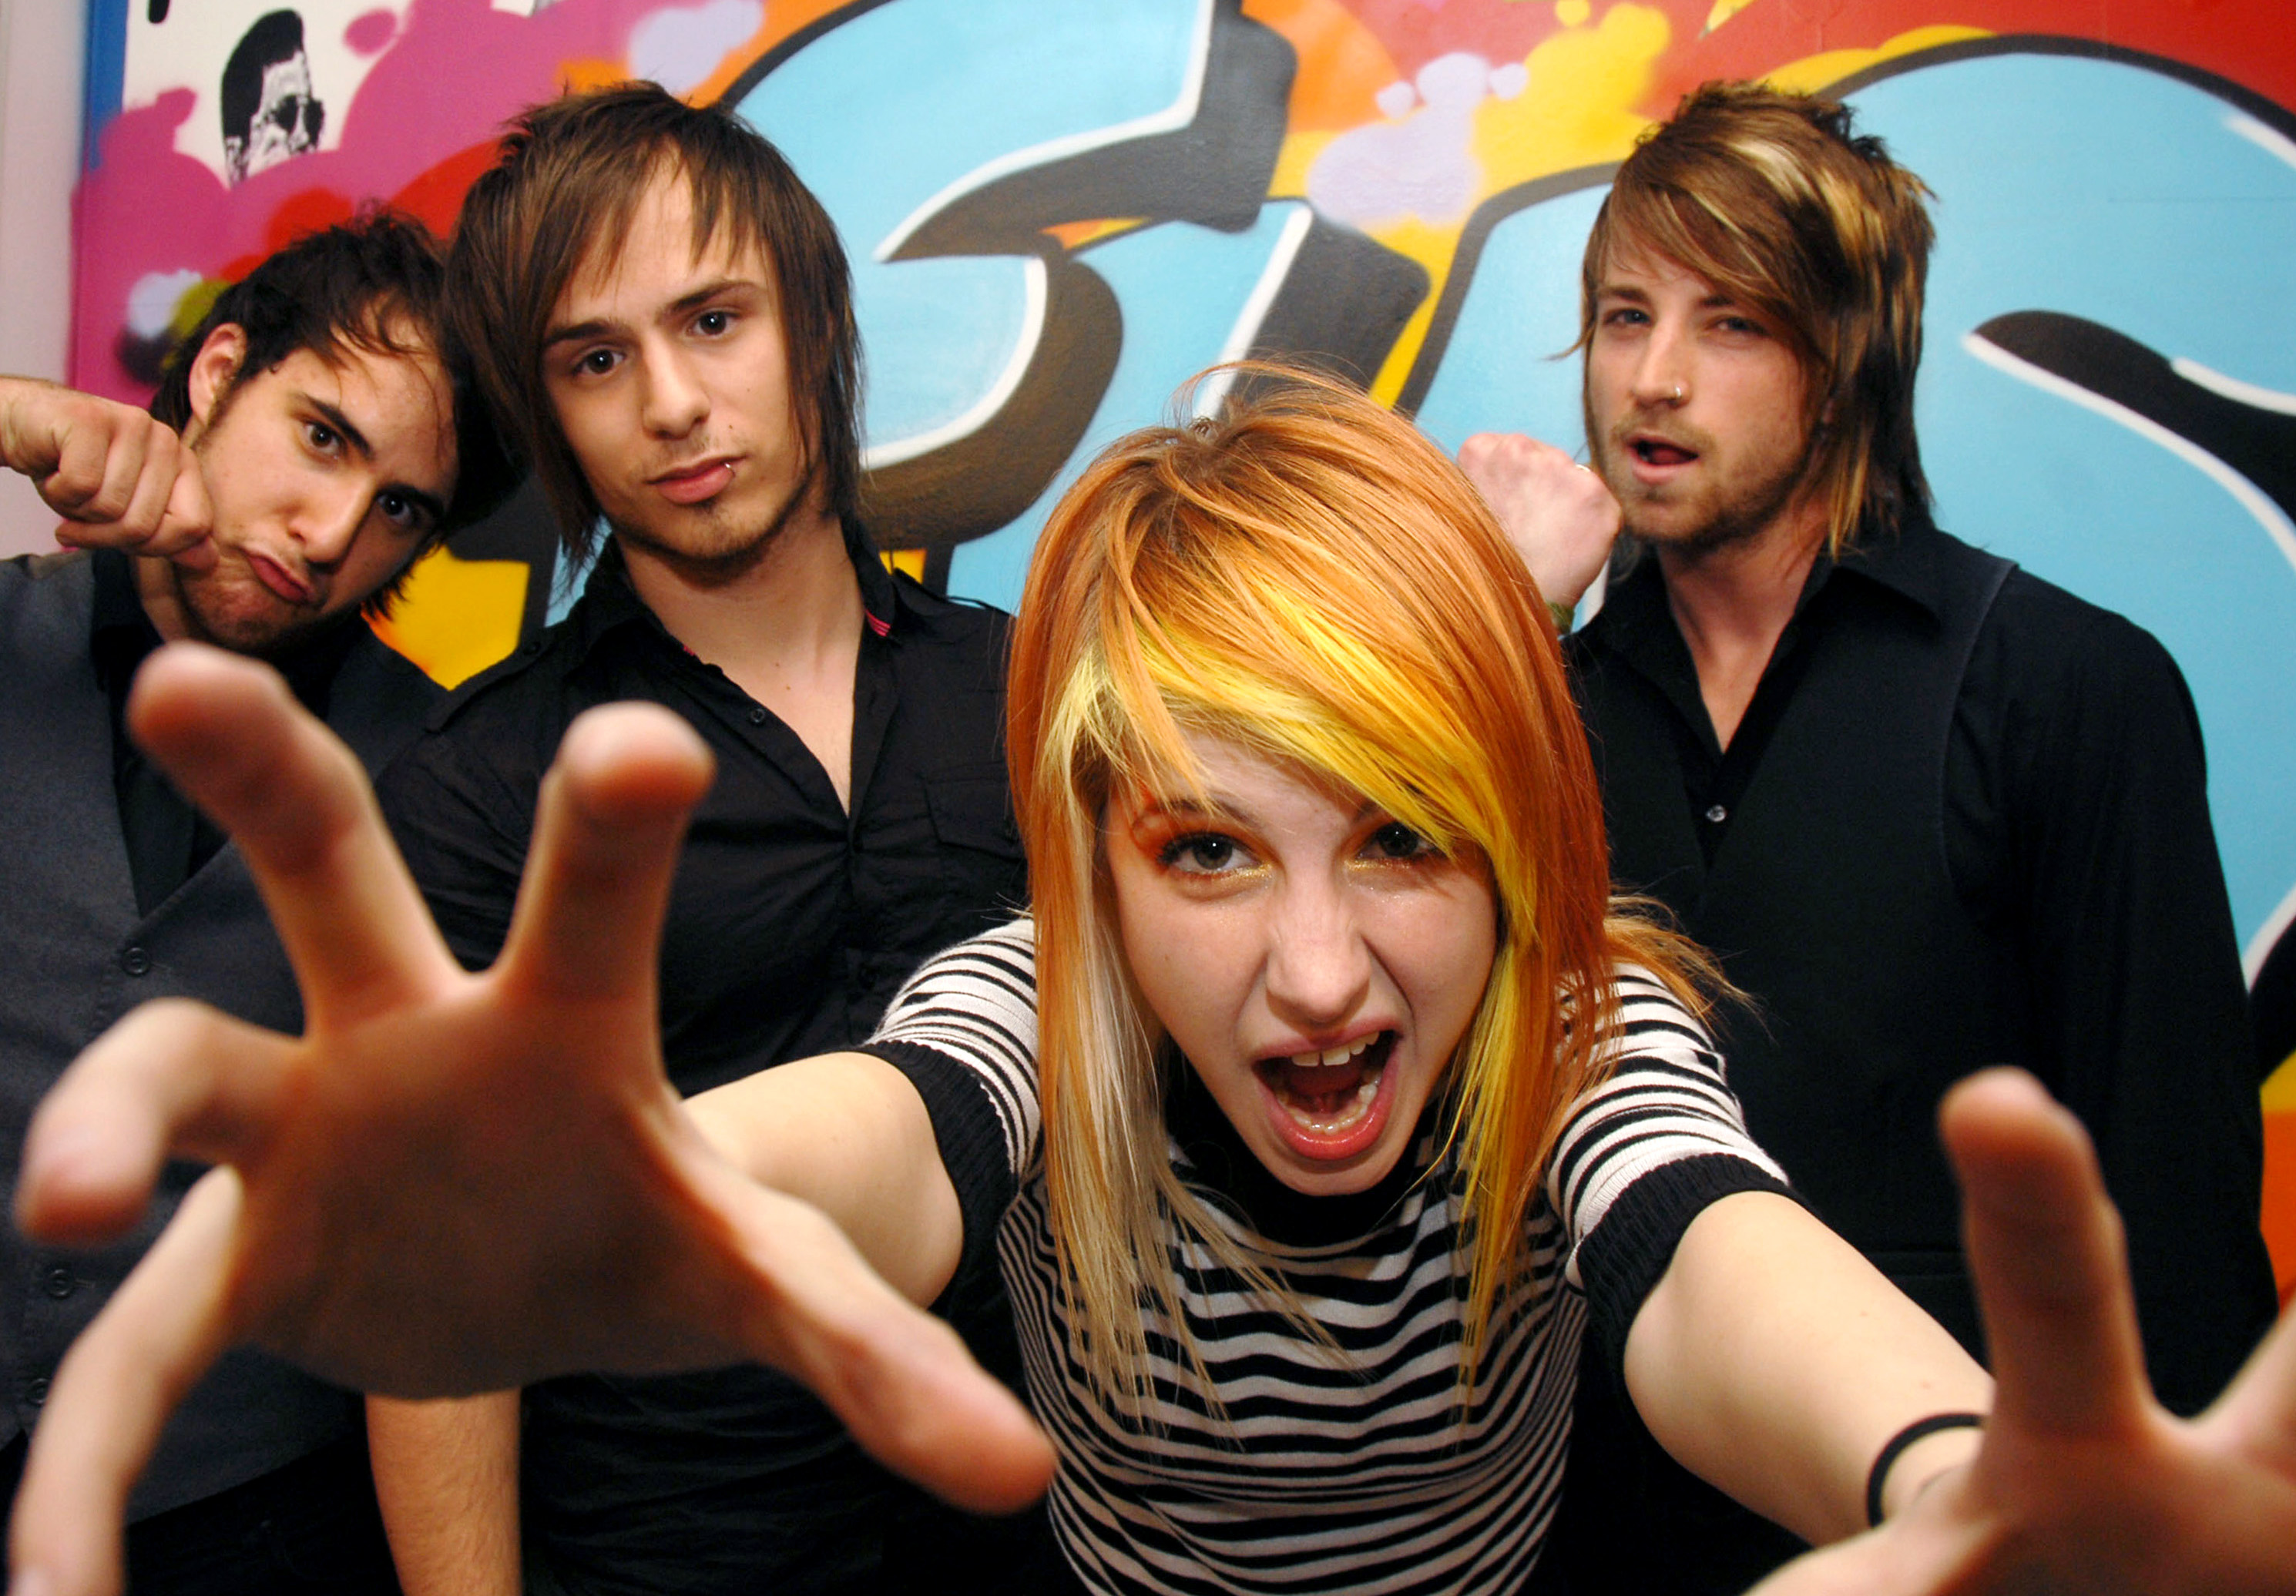 Paramore-Paramore-and-Lily-Allen-Visit-FUSE-s-The-Sauce-June-13-2007-FUSE-Studios-New-York-City-New-